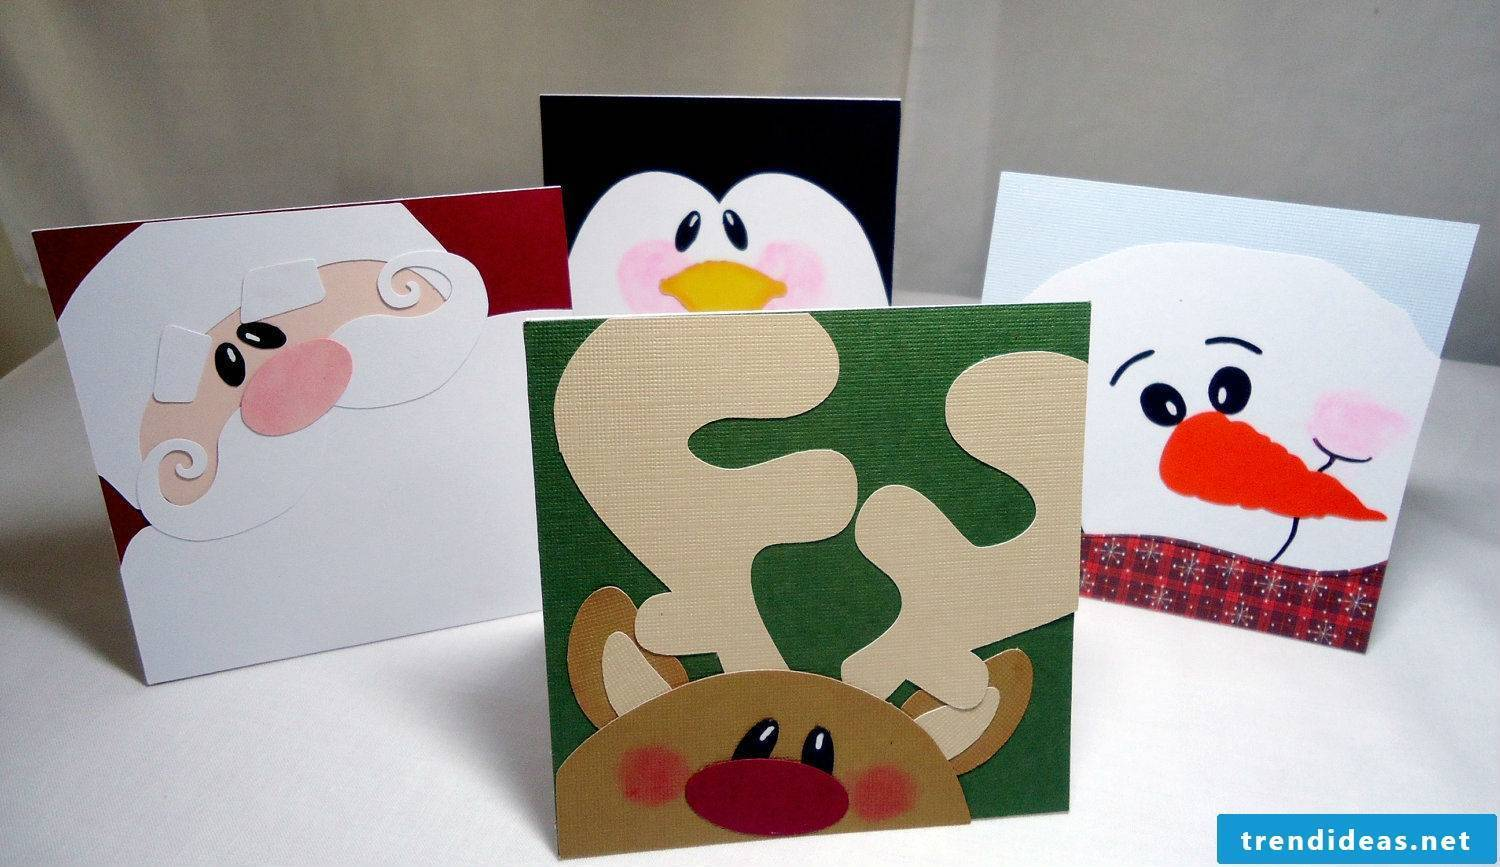 Many Christmas cards make motifs